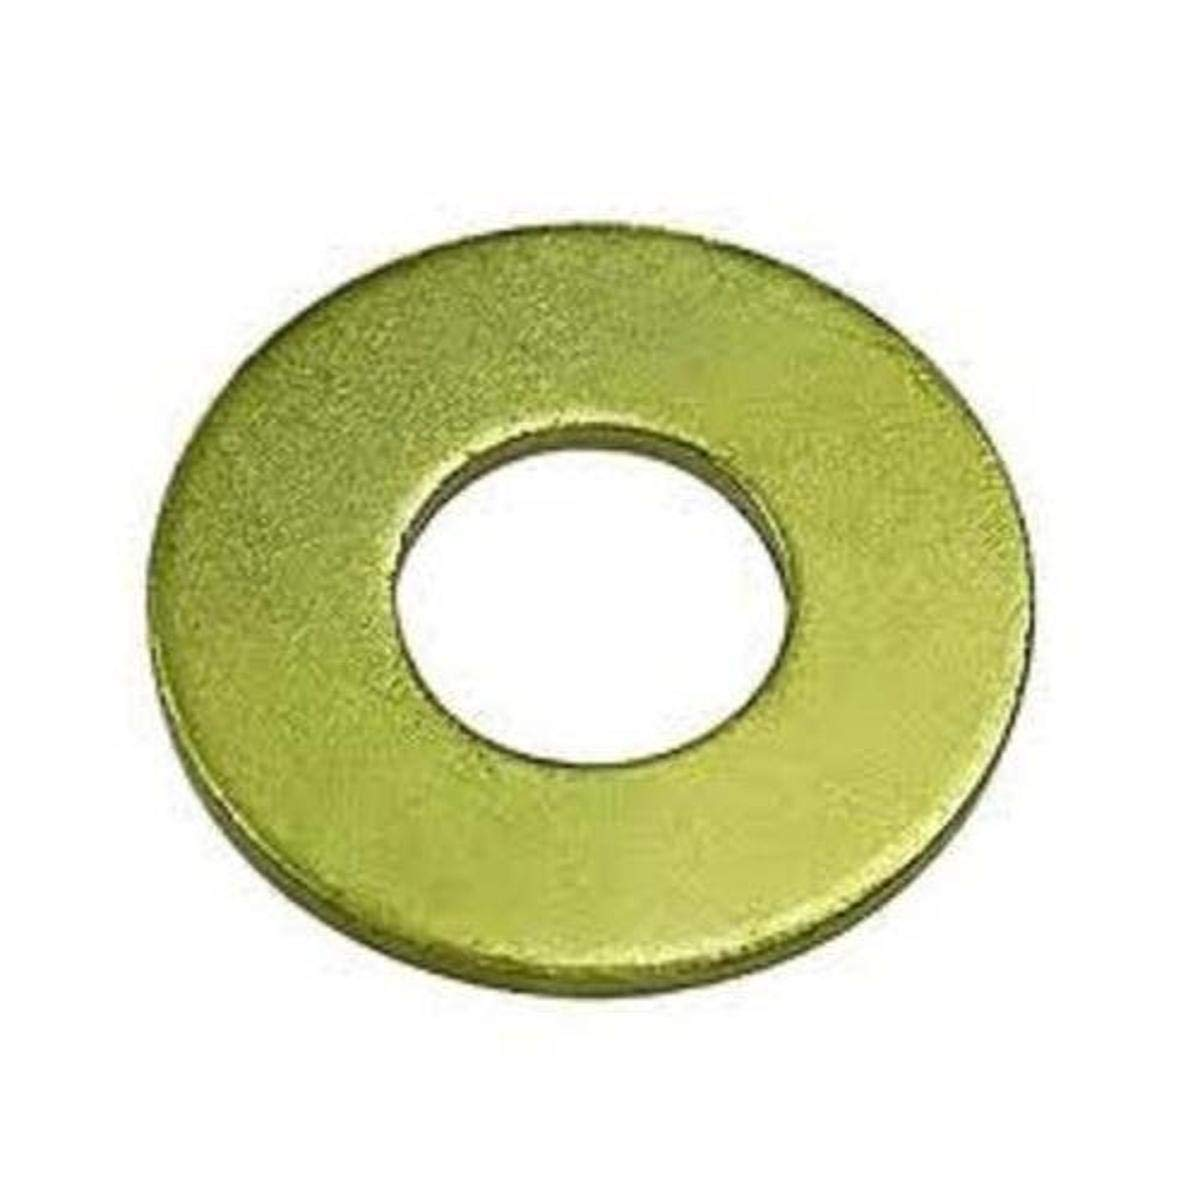 Small Parts FSC1SAEG8 Steel Flat Washer ASME B18.22.1 0.145 Thick 1 Screw Size Pack of 10 Grade 8 Pack of 10 2 OD 1 Screw Size 1-1//16 ID 2 OD 0.145 Thick 1-1//16 ID Zinc Yellow Chromate Plated Finish